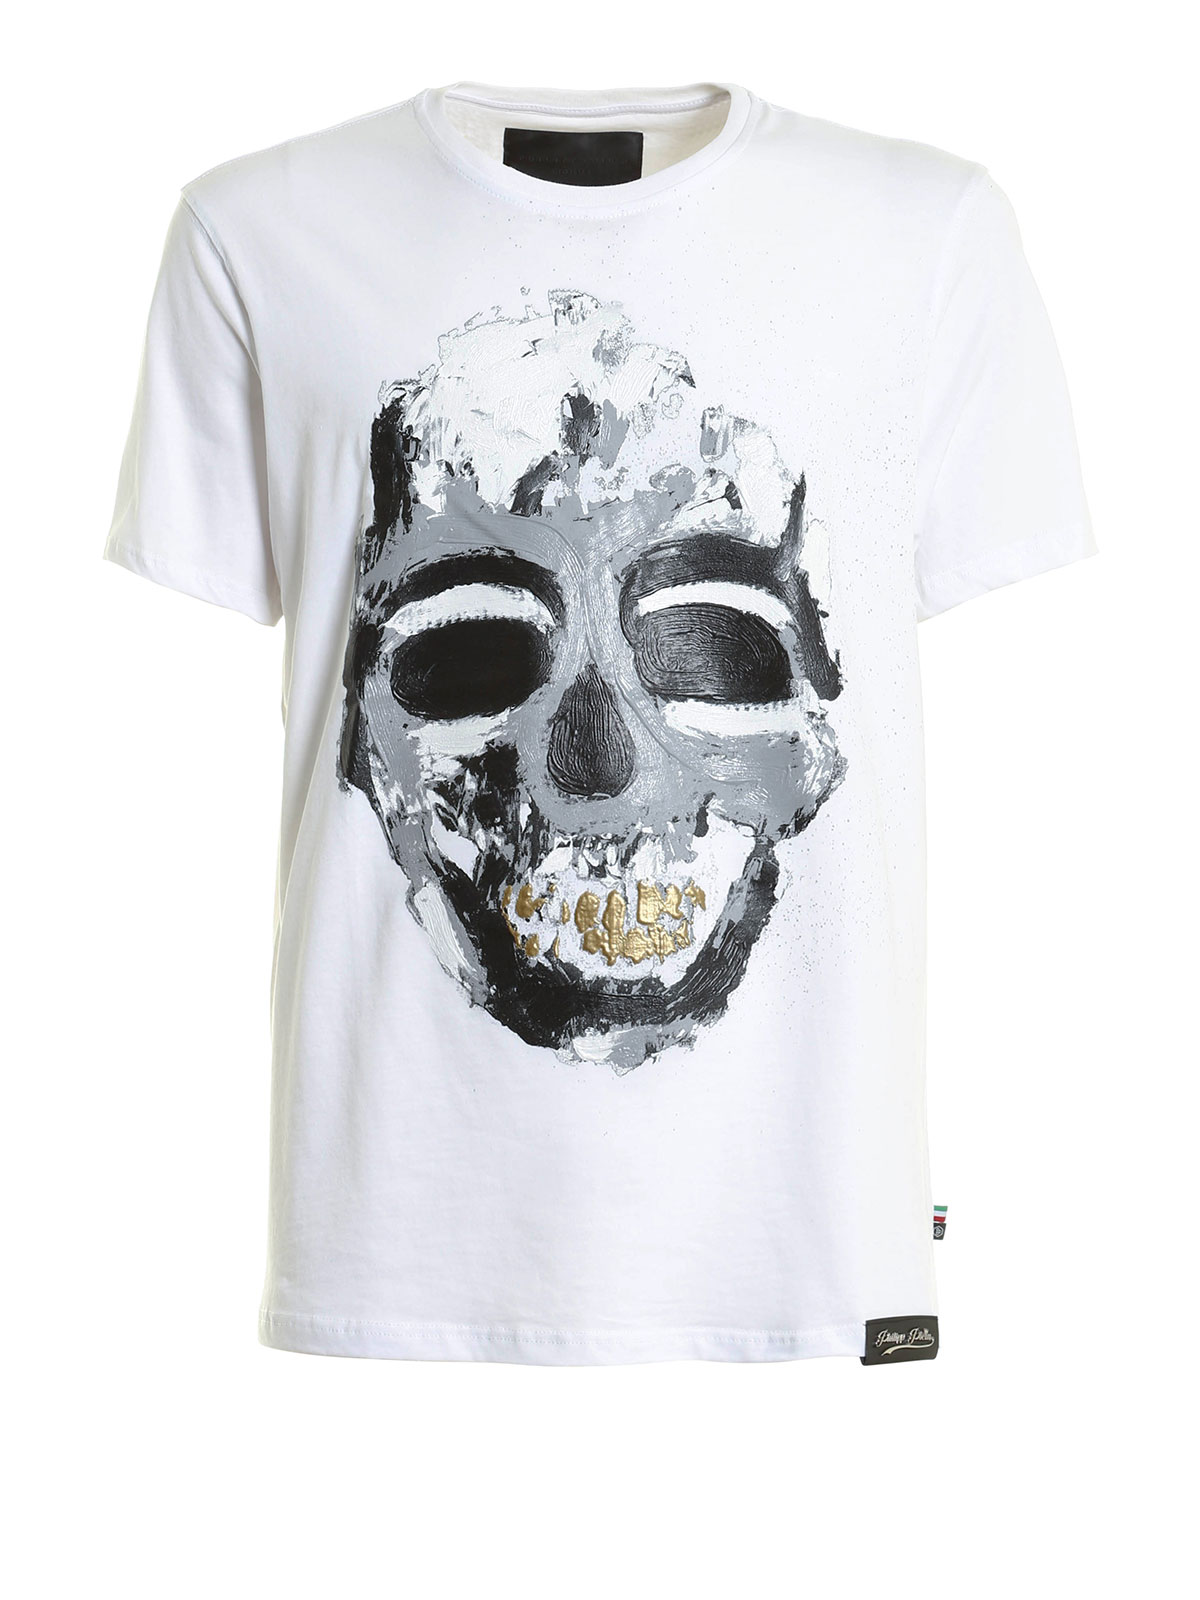 historical skull print t shirt by philipp plein t shirts. Black Bedroom Furniture Sets. Home Design Ideas